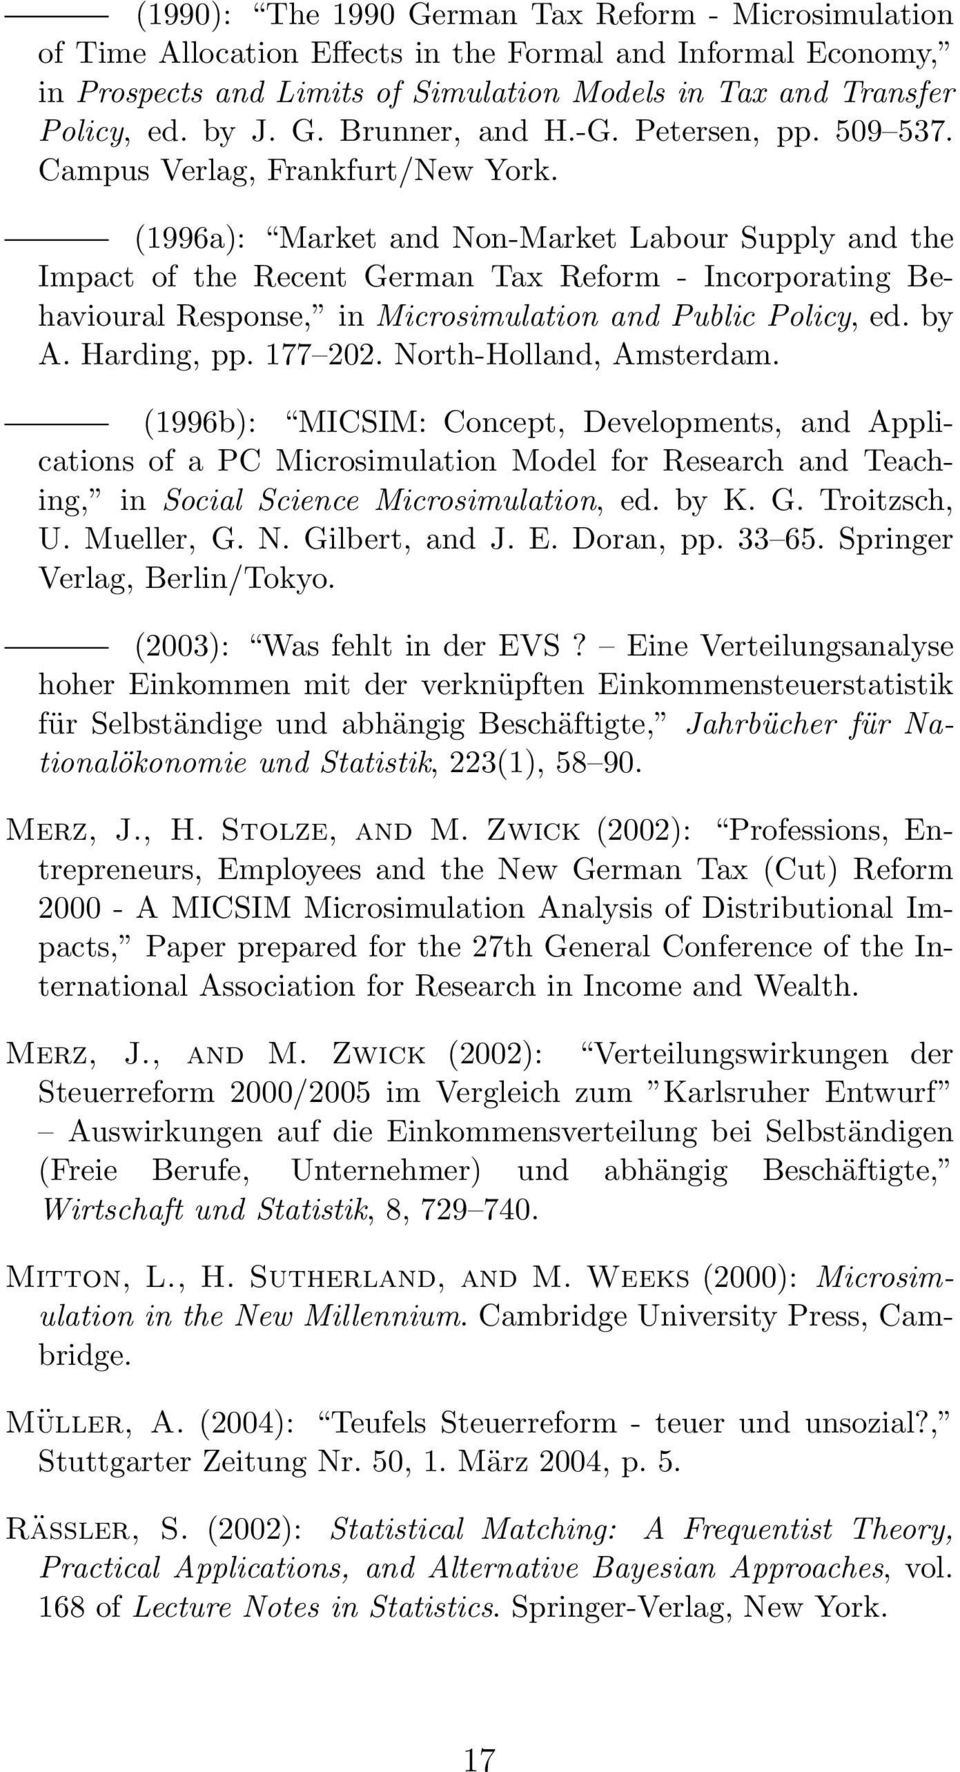 (1996a): Market and Non-Market Labour Supply and the Impact of the Recent German Tax Reform - Incorporating Behavioural Response, in Microsimulation and Public Policy, ed. by A. Harding, pp. 177 202.